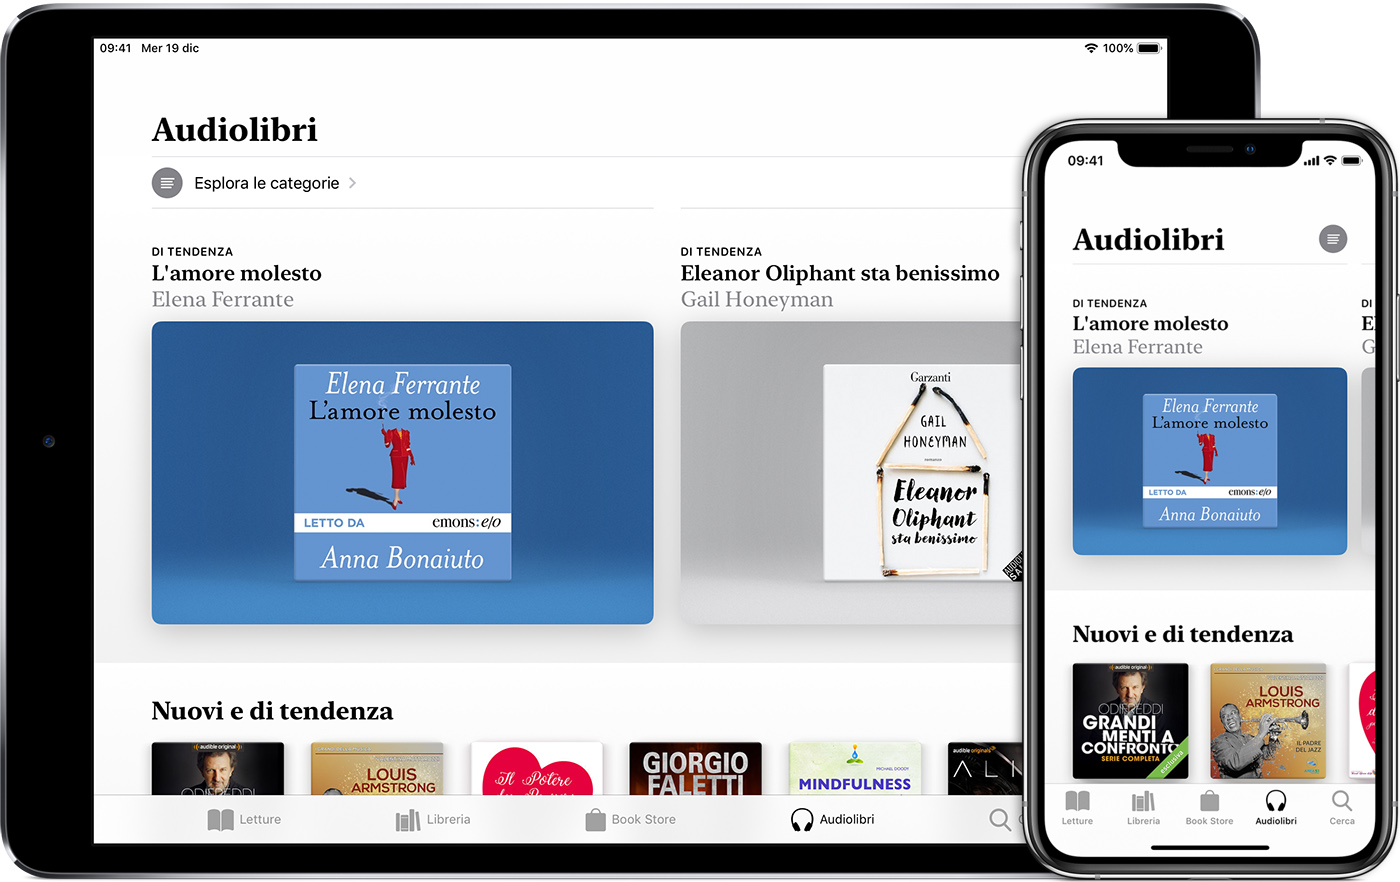 iPad e iPhone con la schermata Audiolibri in Apple Books visualizzata